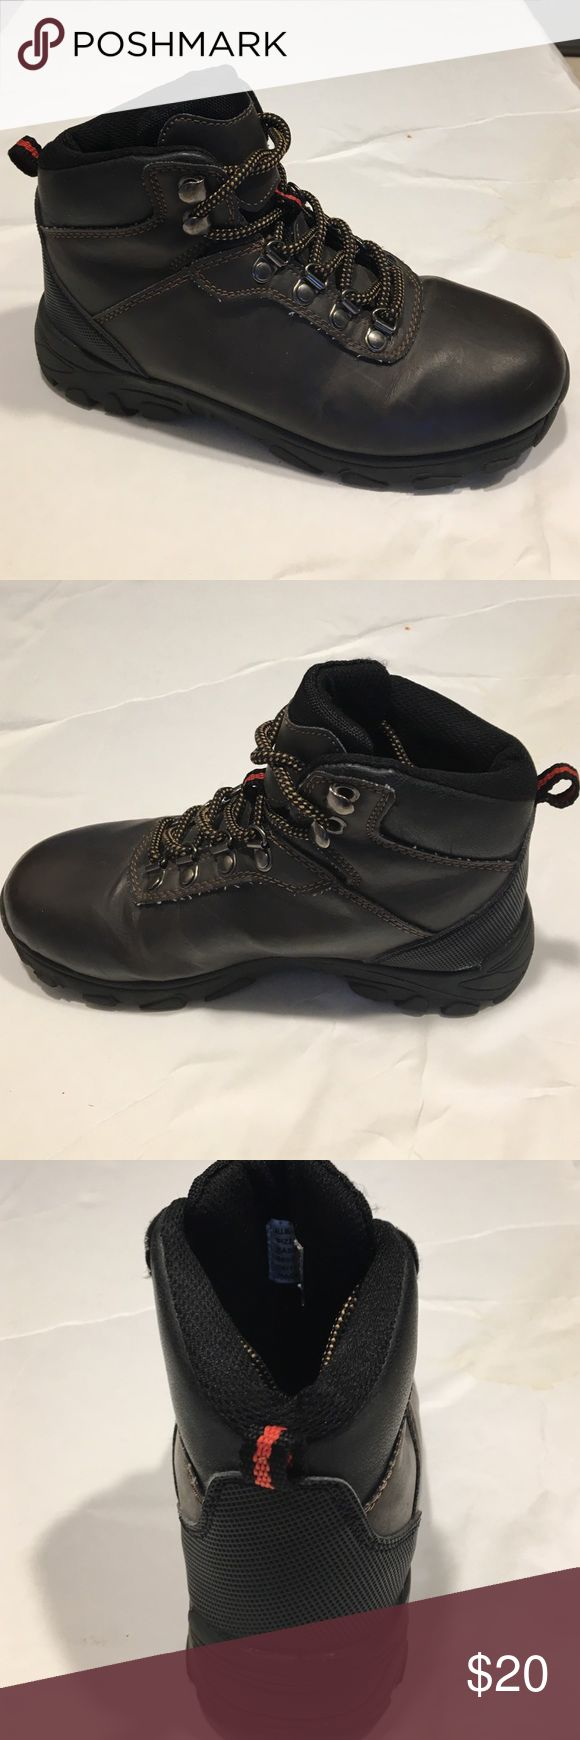 Bass Boys hiking boots Size 1M Bass Boys Hiking Boots Size 1M, lightly worn, still has lots of wear left, good condition Bass Shoes Boots